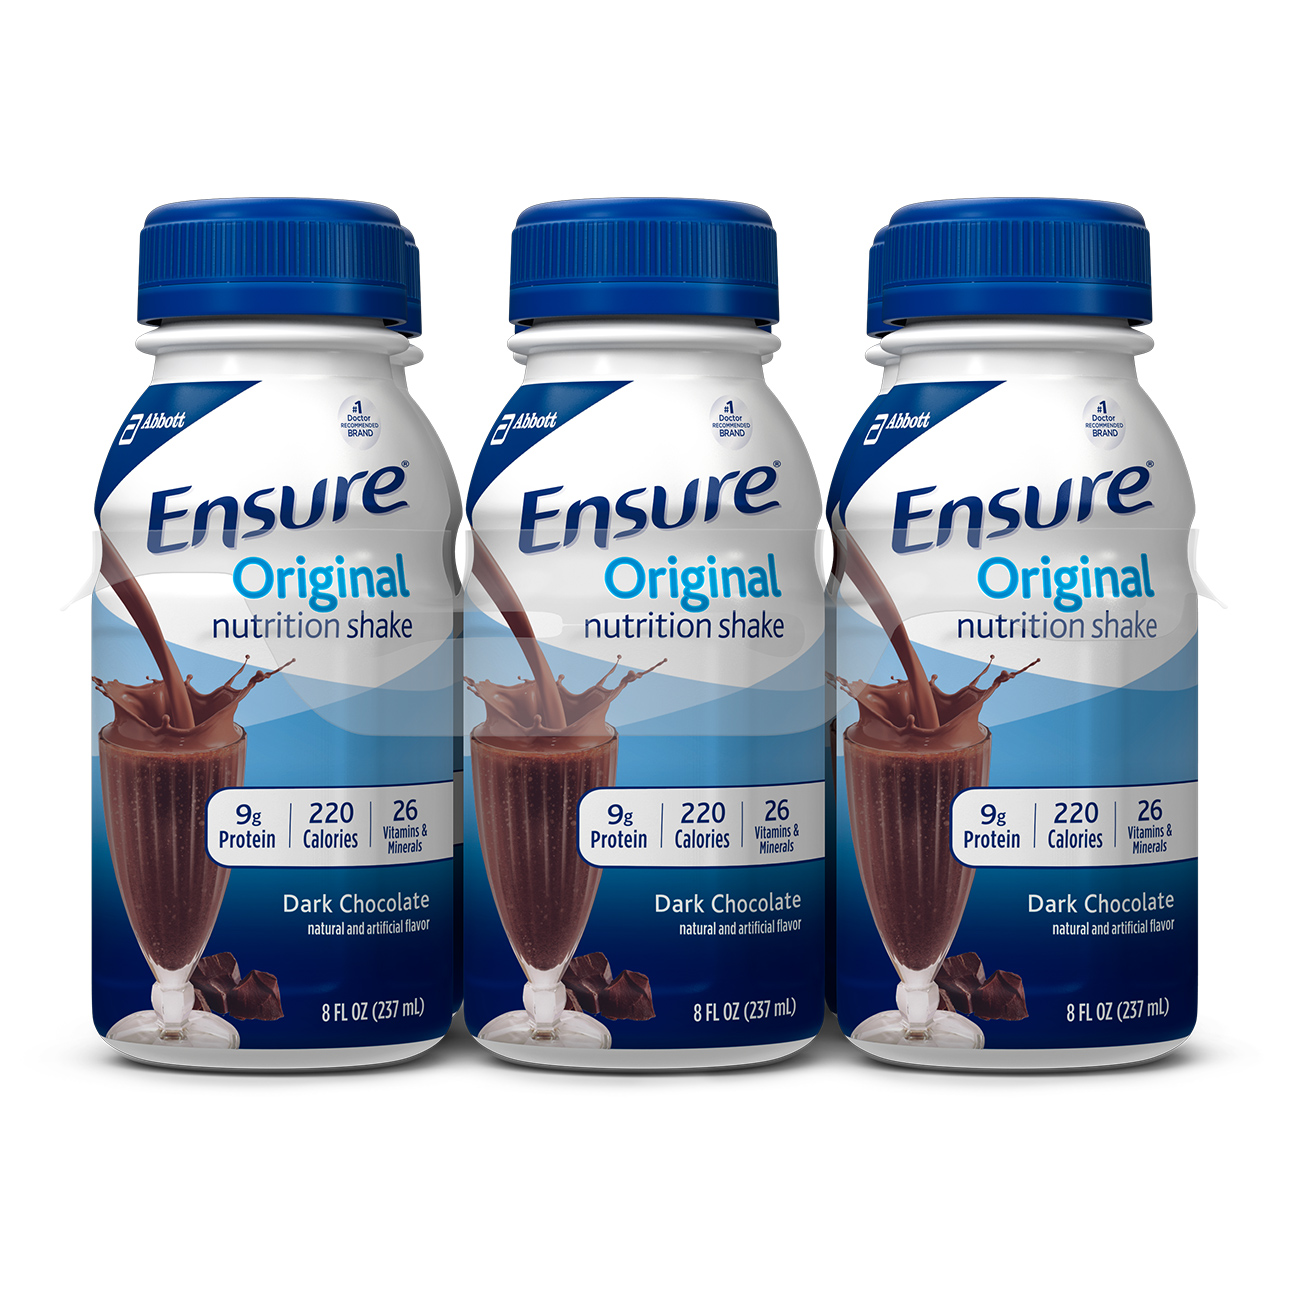 Ensure Original Nutrition Shake, Rich Dark Chocolate, 8 fl oz (Pack of 6) by Abbott Nutrition